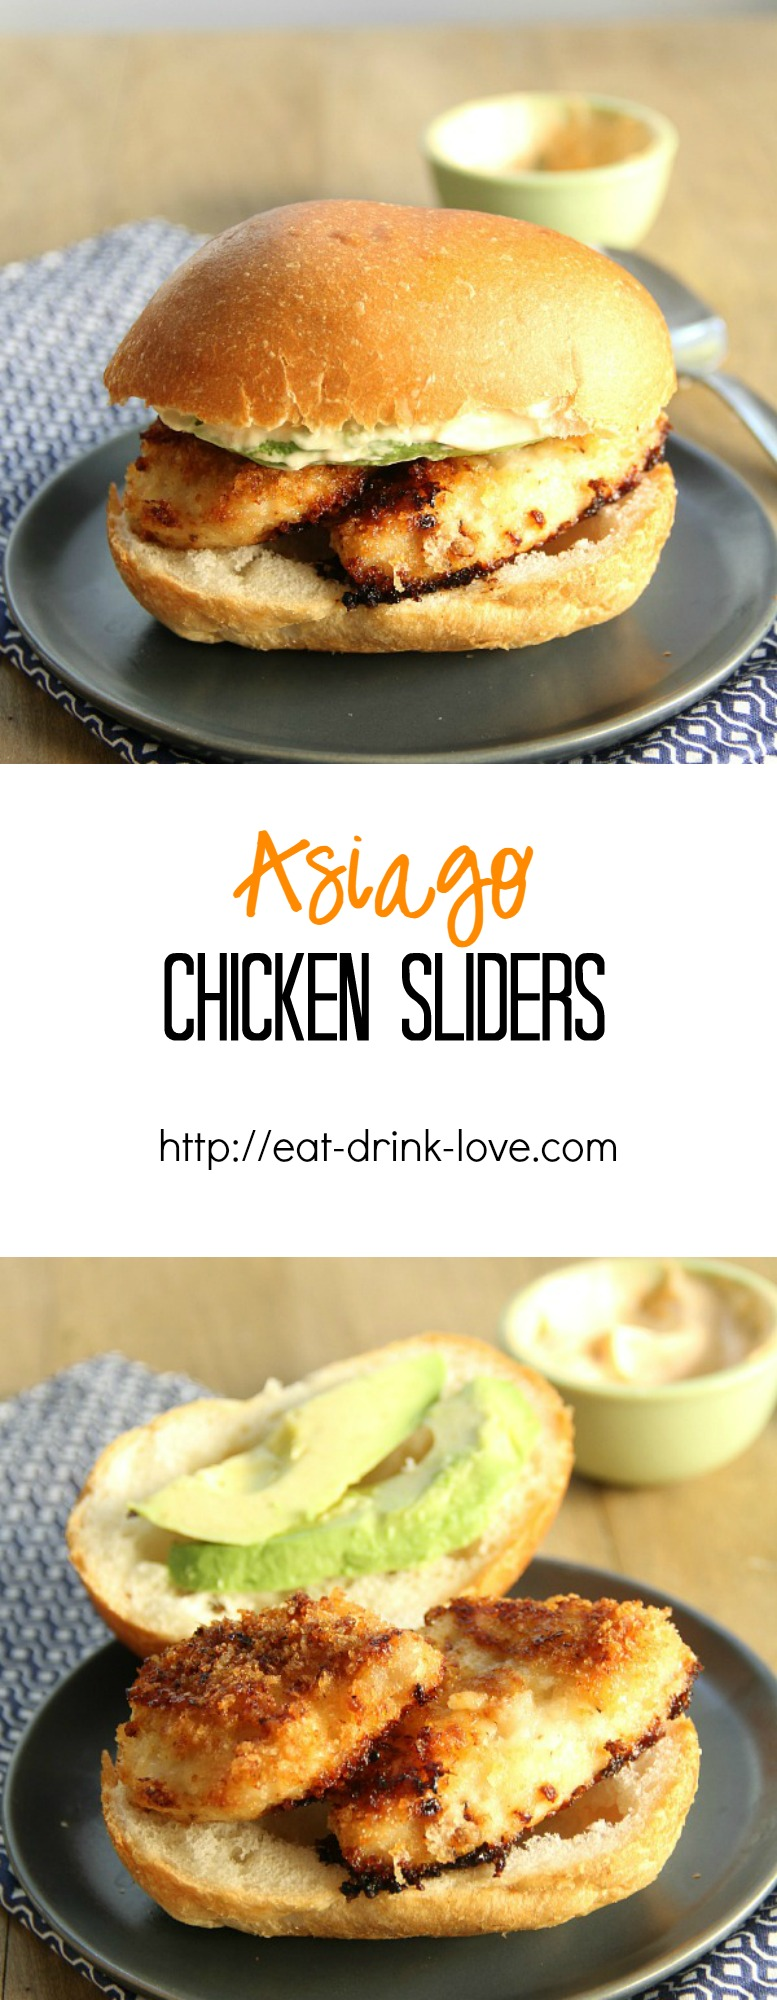 Asiago Chicken Sliders - asiago-breaded chicken on slider buns with an easy chipotle sauce